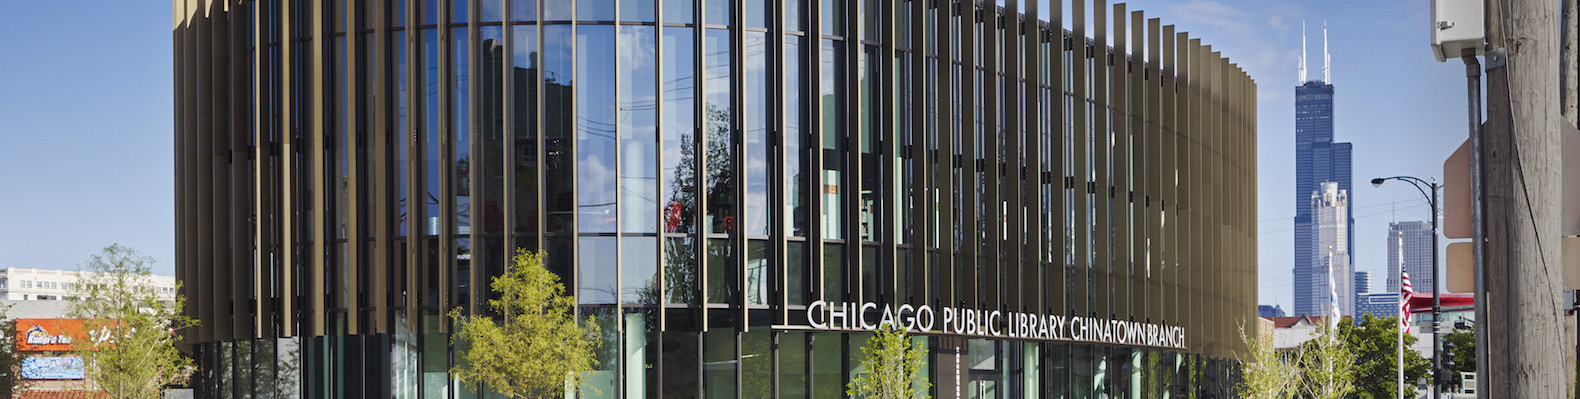 Leed Gold Seeking Chicago Chinatown Library Embodies Ancient Feng Shui